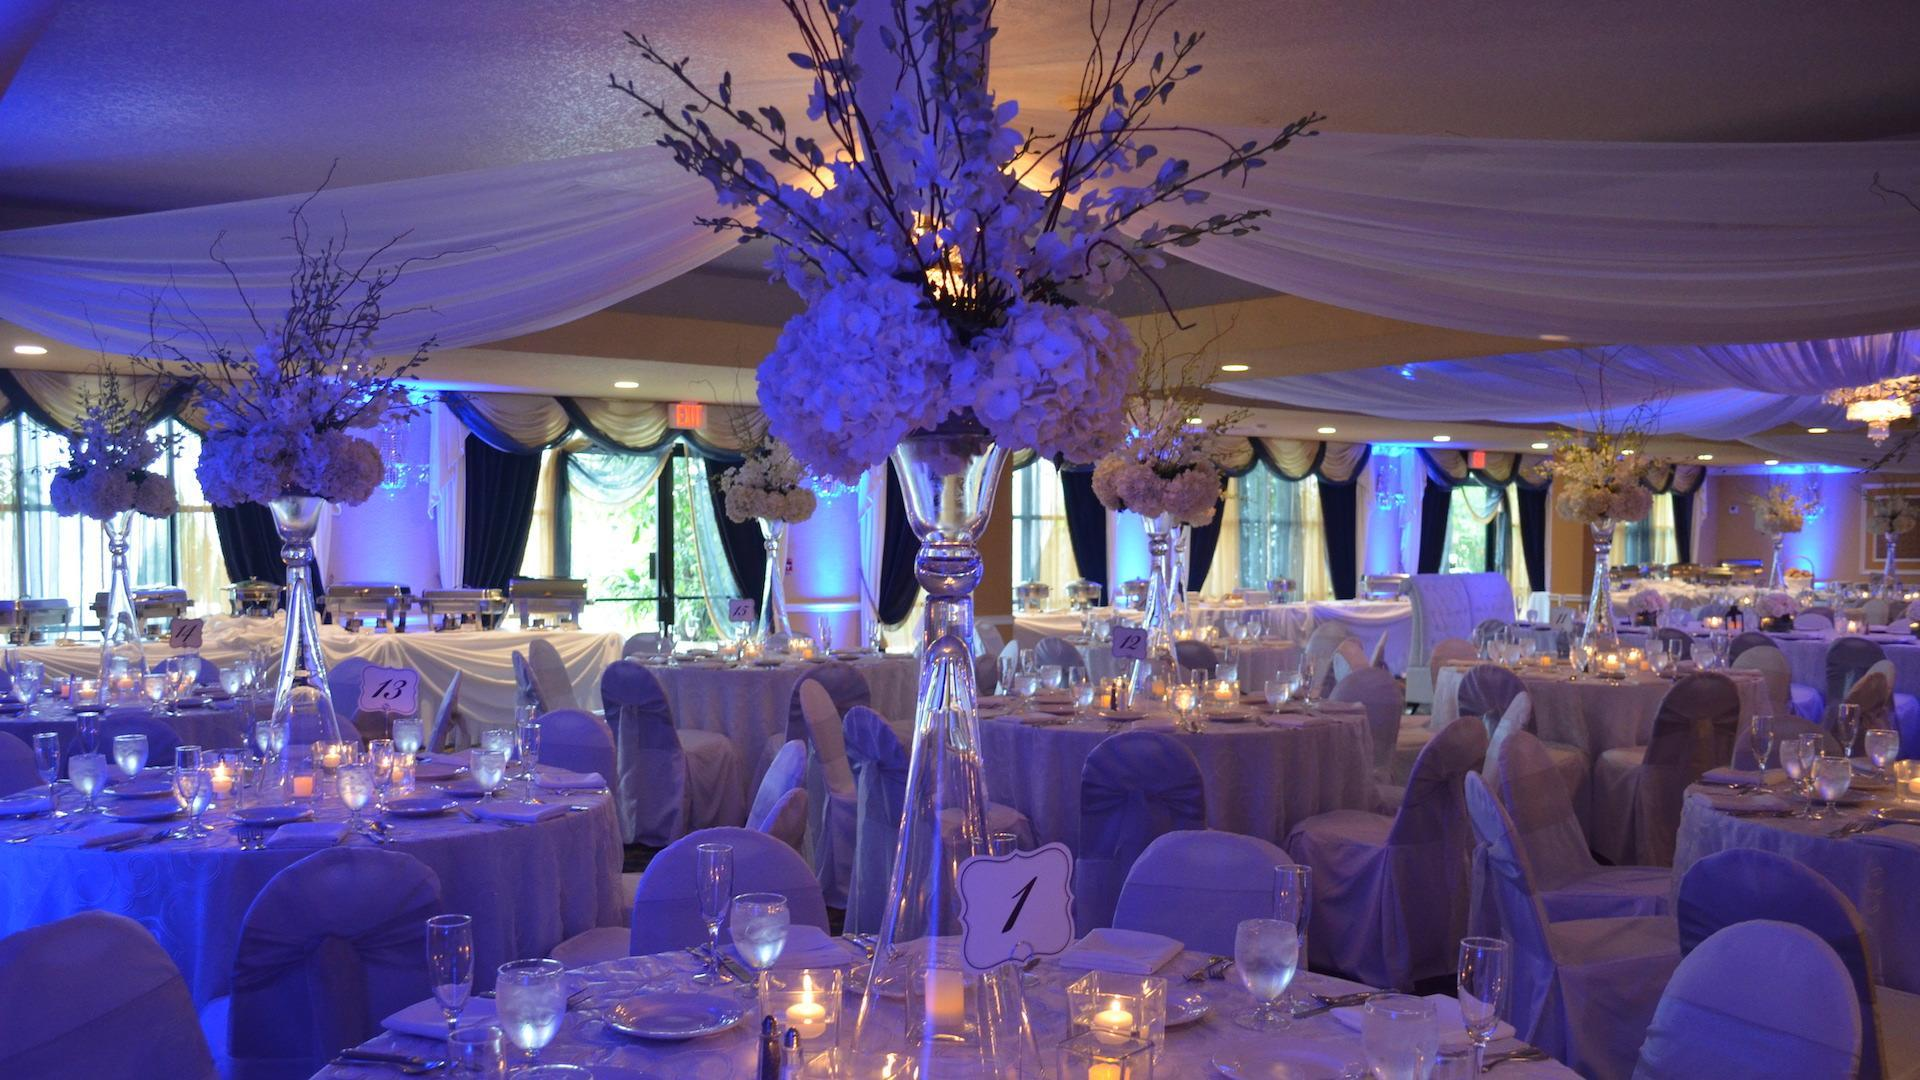 Grand Salon Rent Grand Salon Reception Halls Ballrooms Corporate Events